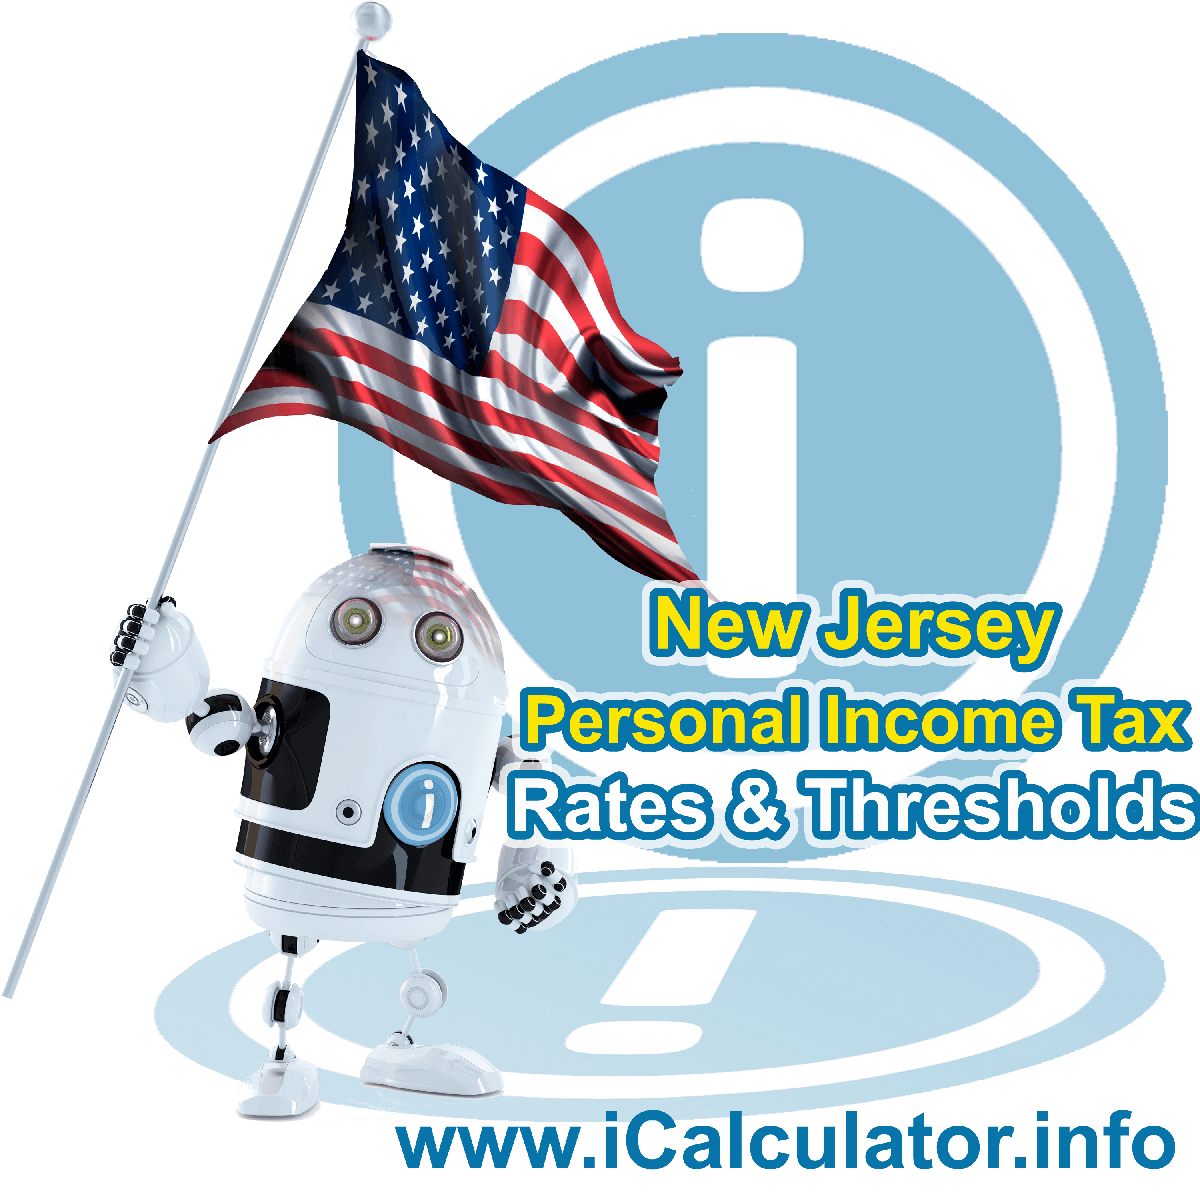 New Jersey State Tax Tables 2021. This image displays details of the New Jersey State Tax Tables for the 2021 tax return year which is provided in support of the 2021 US Tax Calculator